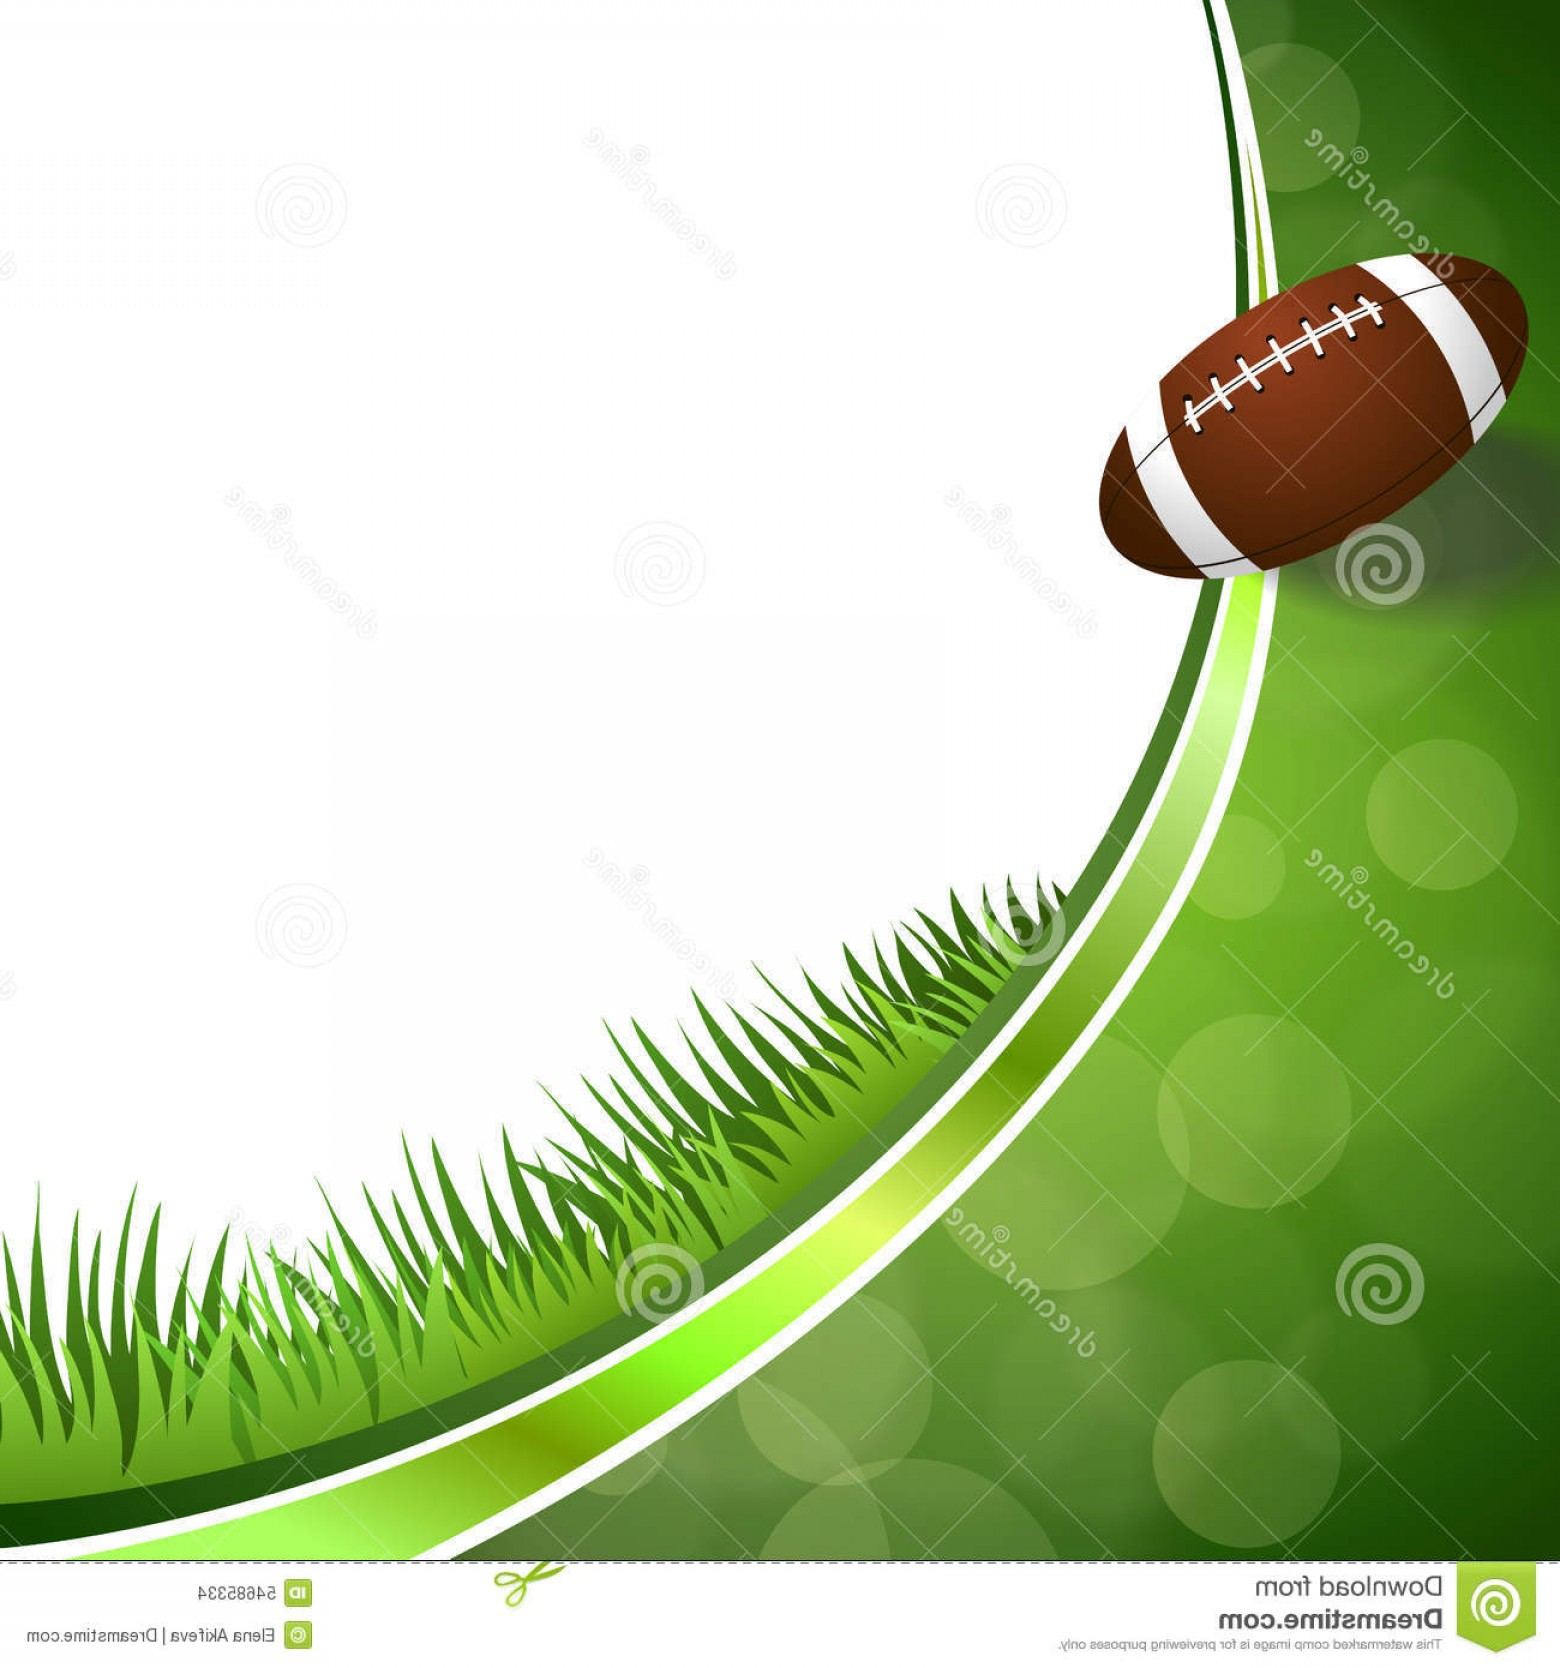 Football Vector Wallpaper: Stock Illustration Background Abstract Green American Football Ball Illustration Vector Image